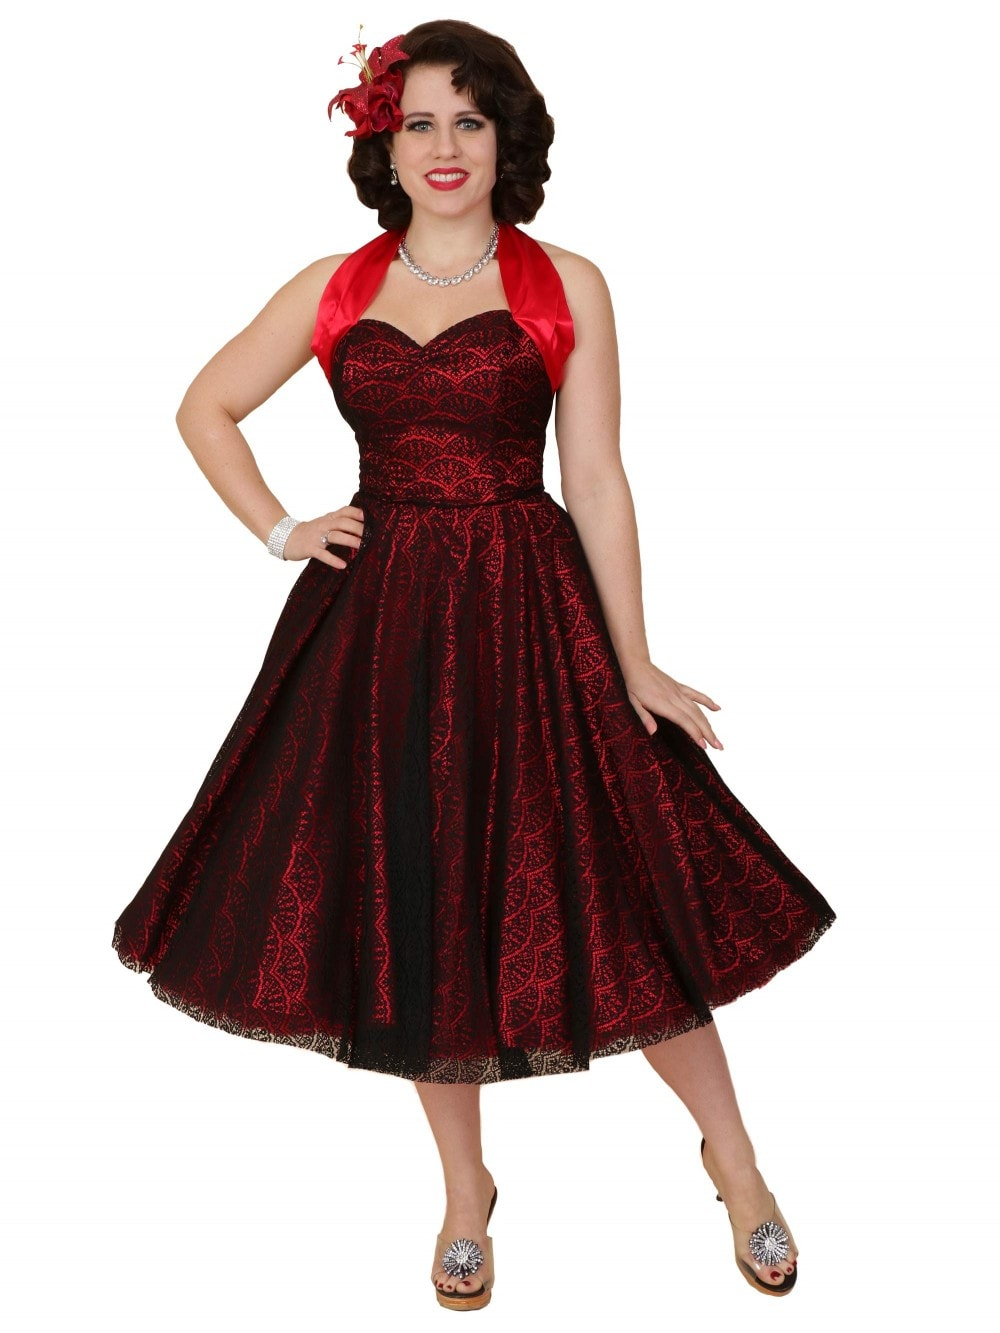 727ed5883cc8 1950s Halterneck Luxury Red Satin Fan Lace Dress From Vivien of Holloway